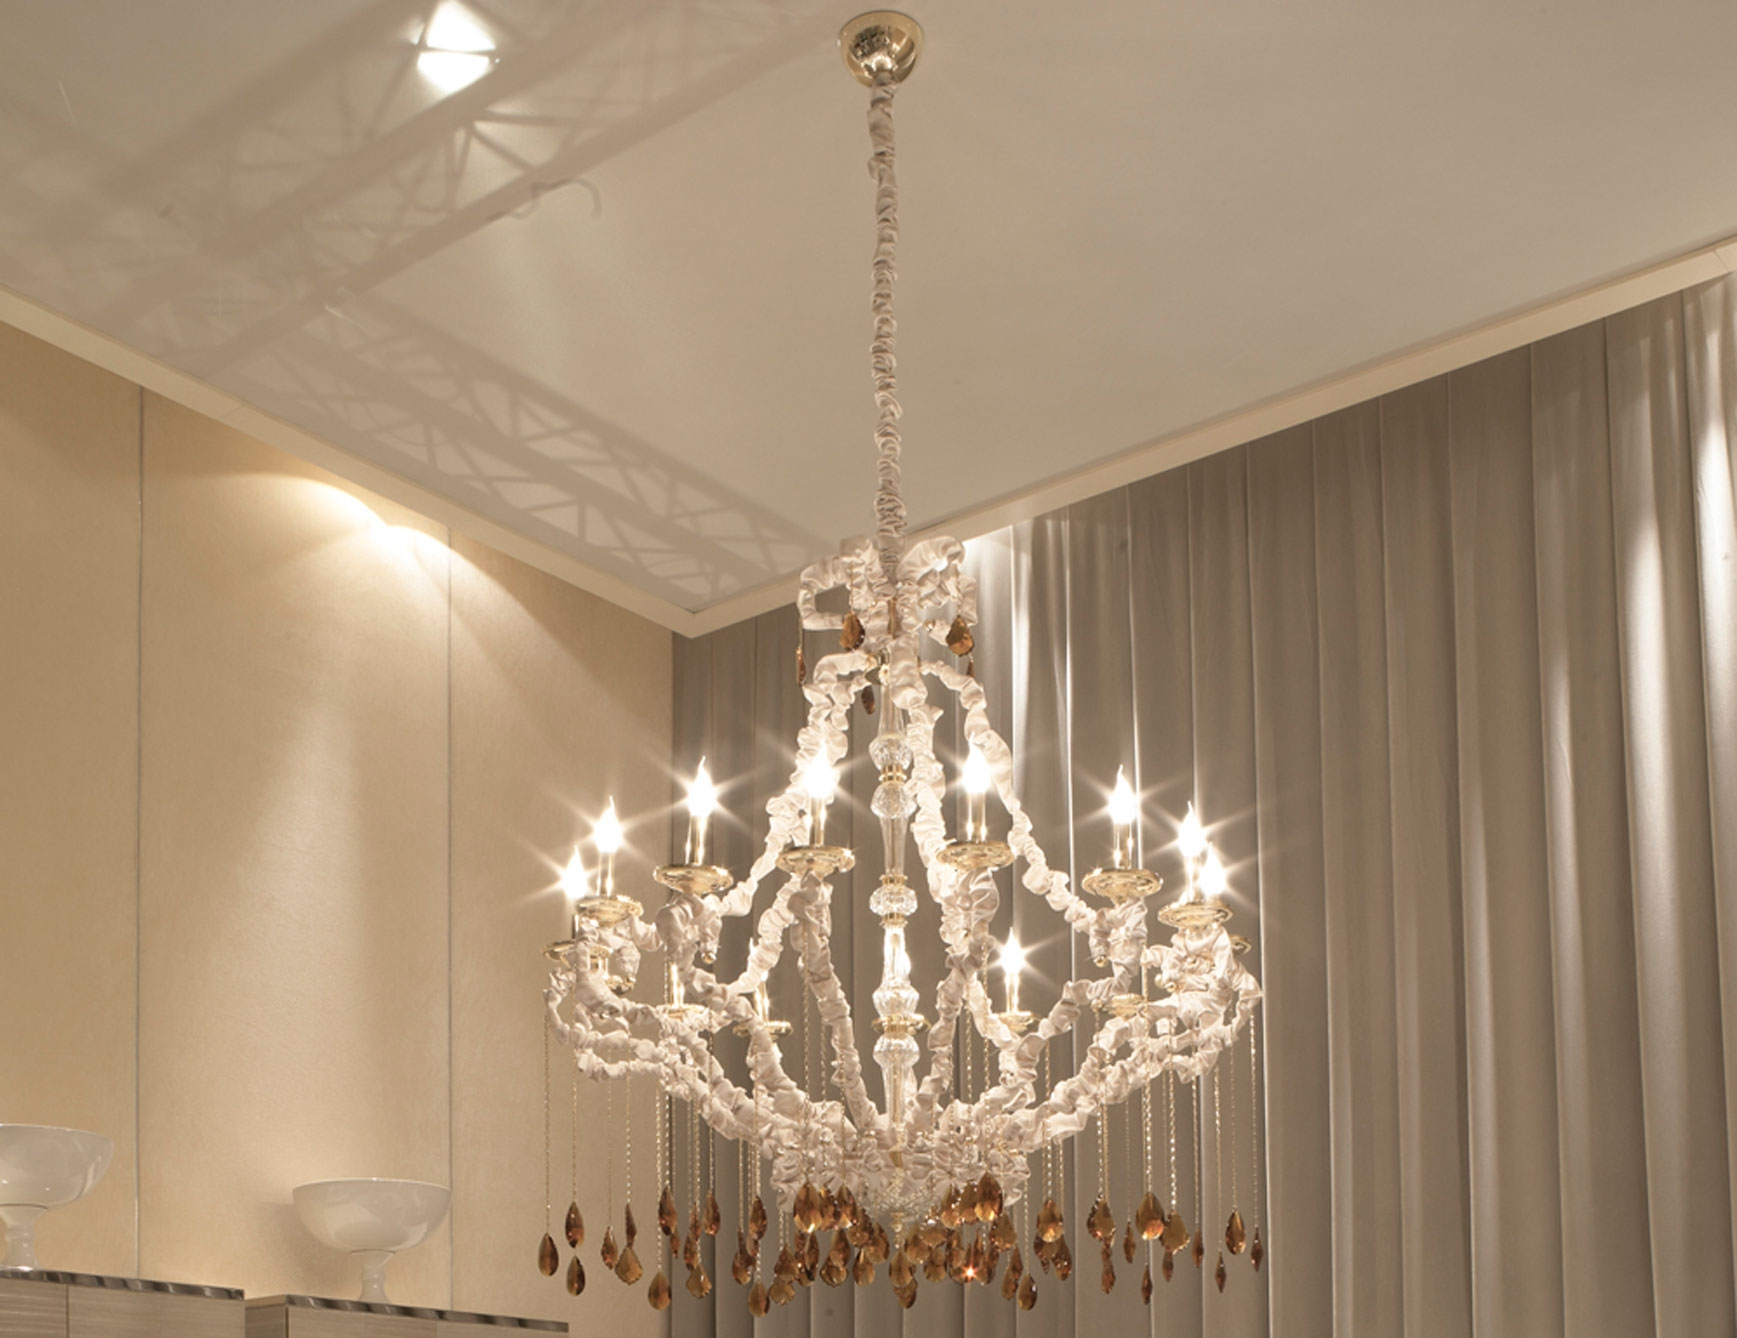 Italian Chandelier Style Italian Chandelier Styles Interior Intended For Italian Chandeliers Style (View 5 of 12)